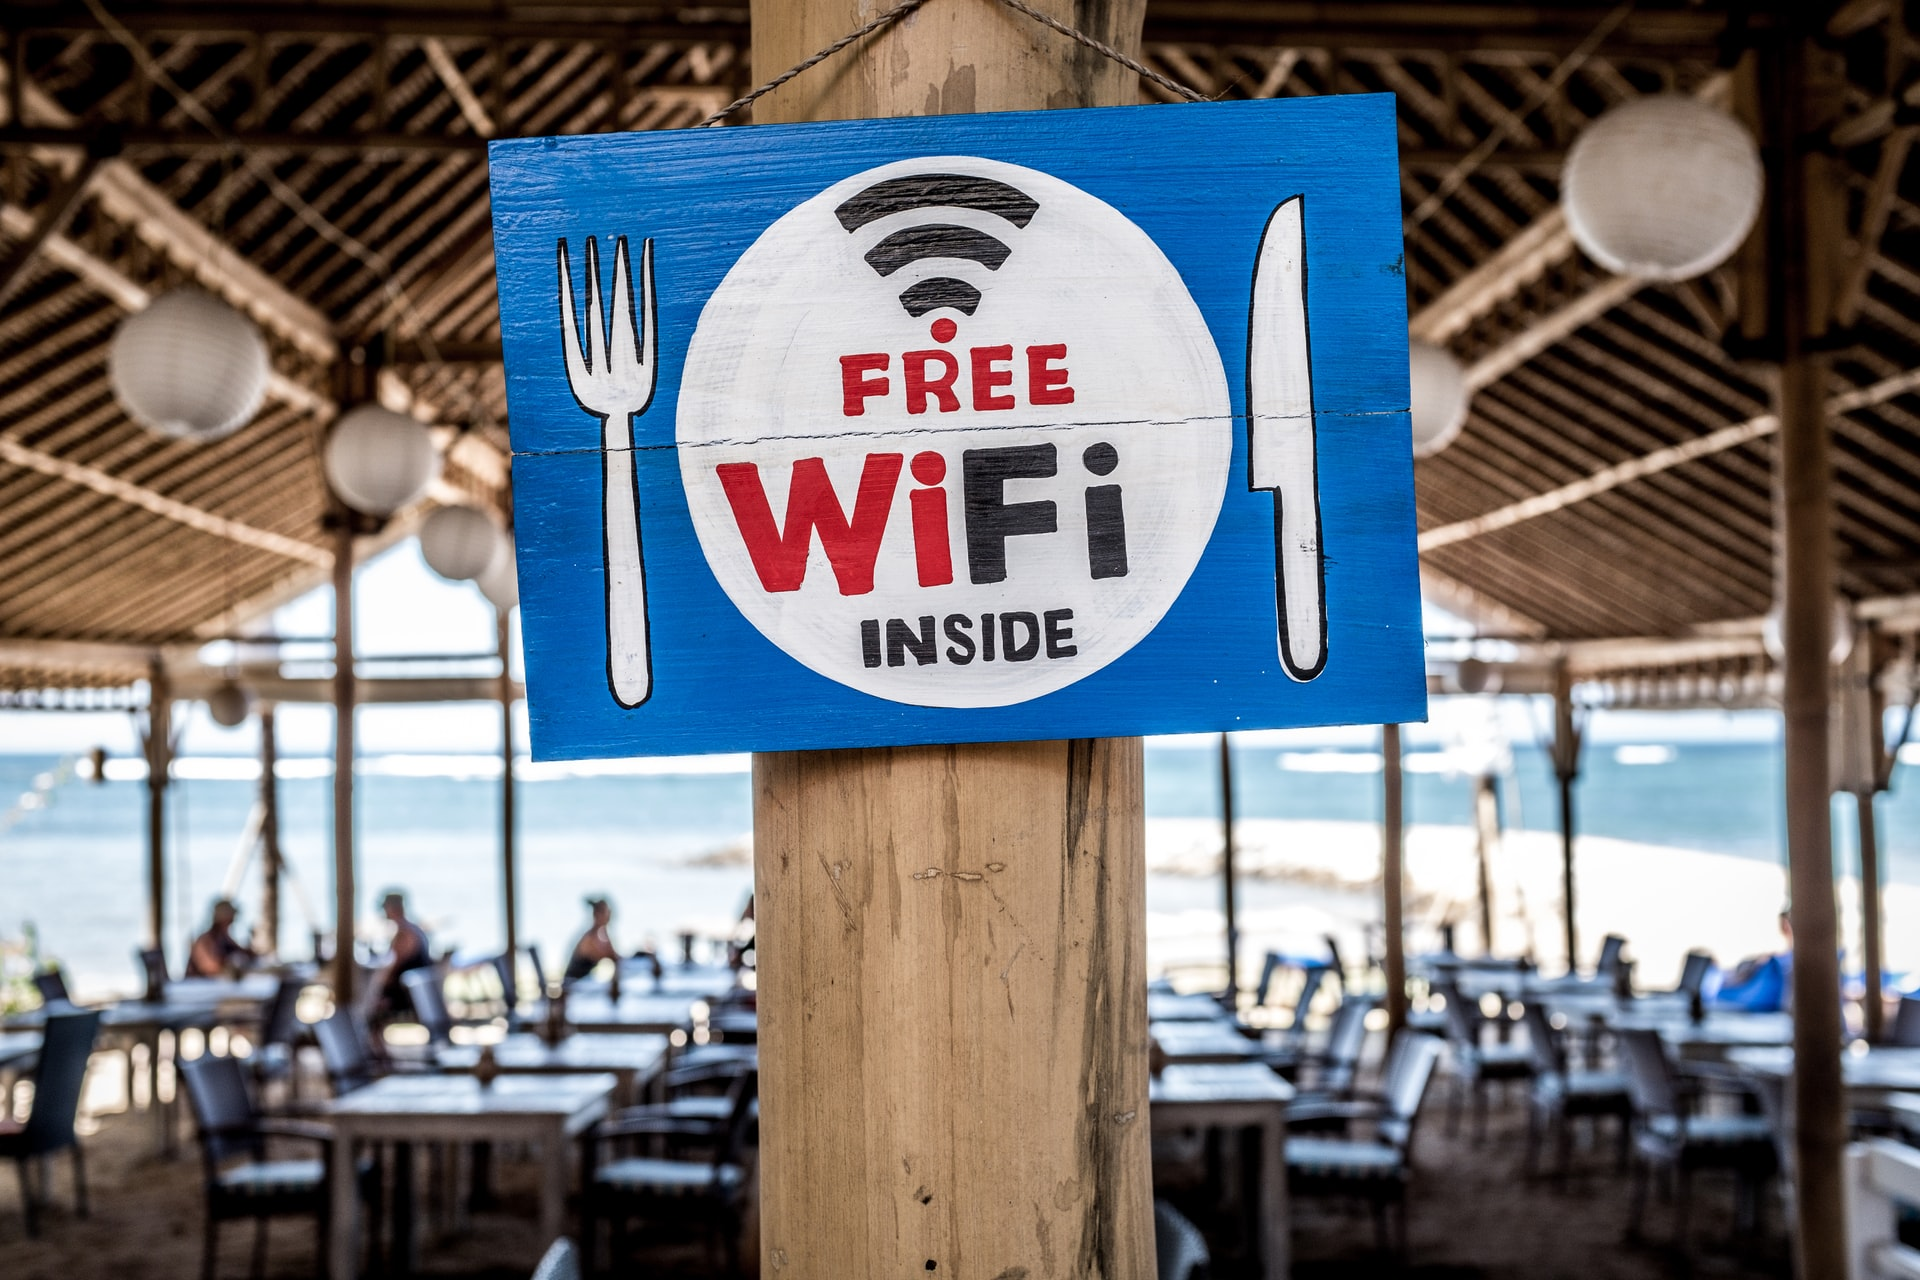 Free WiFi in a restaurant